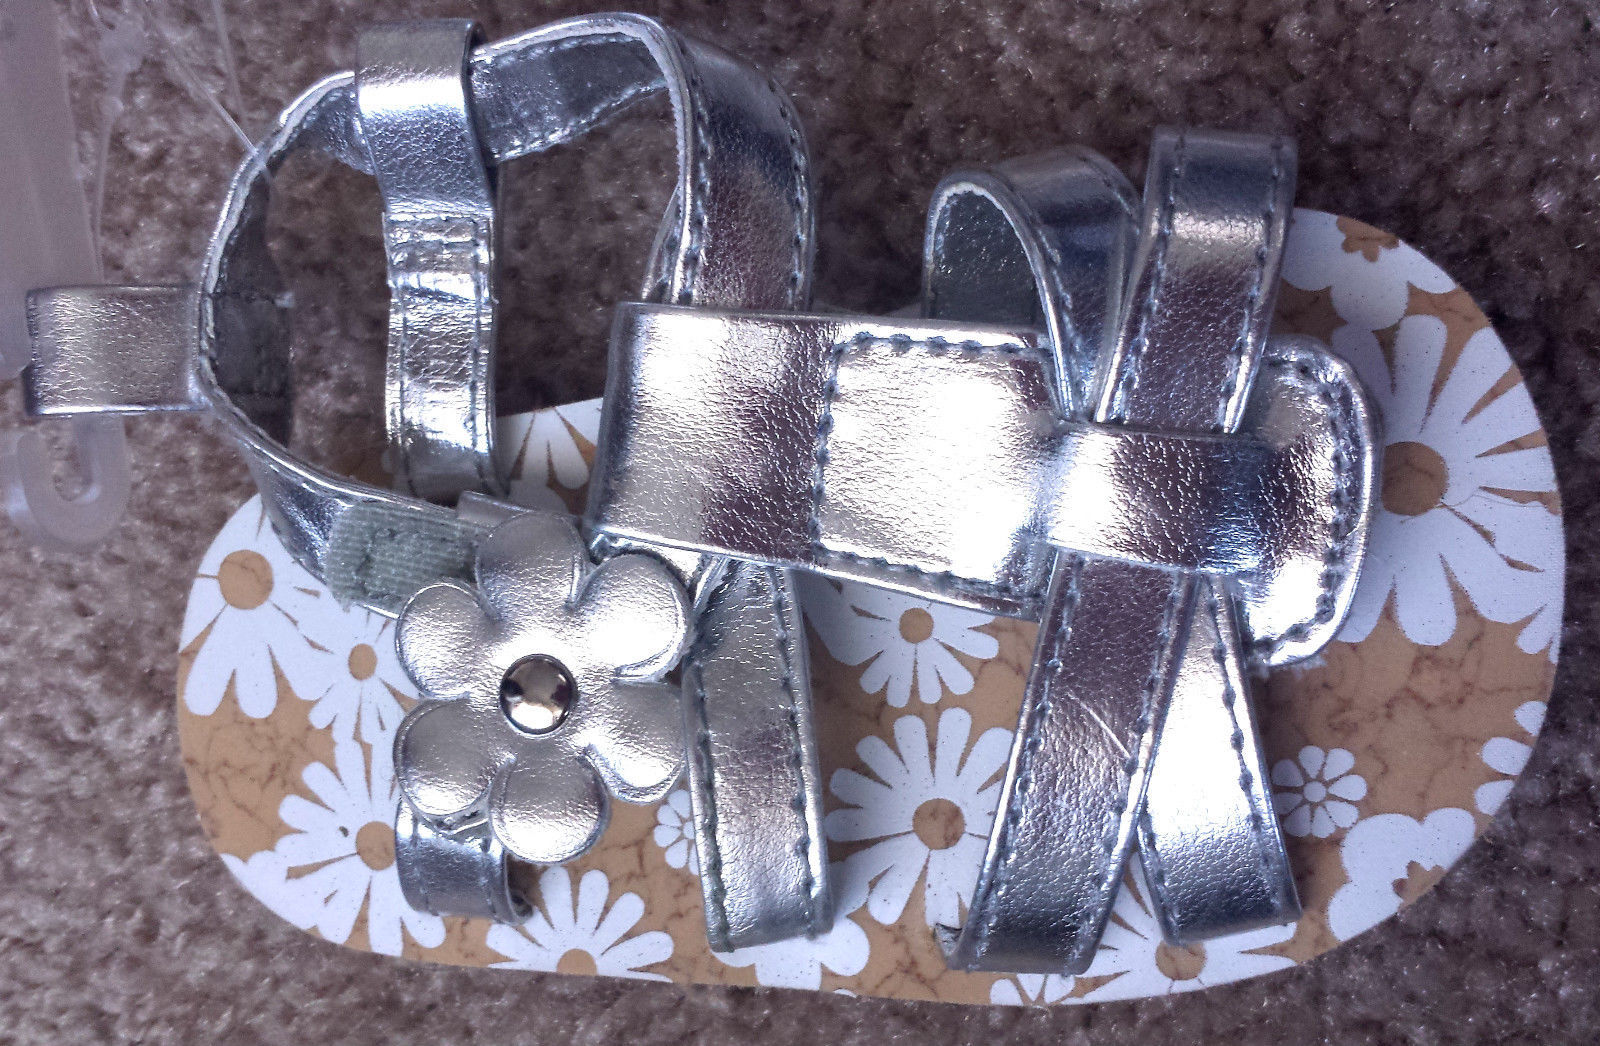 NEW Baby Girl's Size 2 Metallic Silver Floral W/ Studs Designed Velcro Sandals